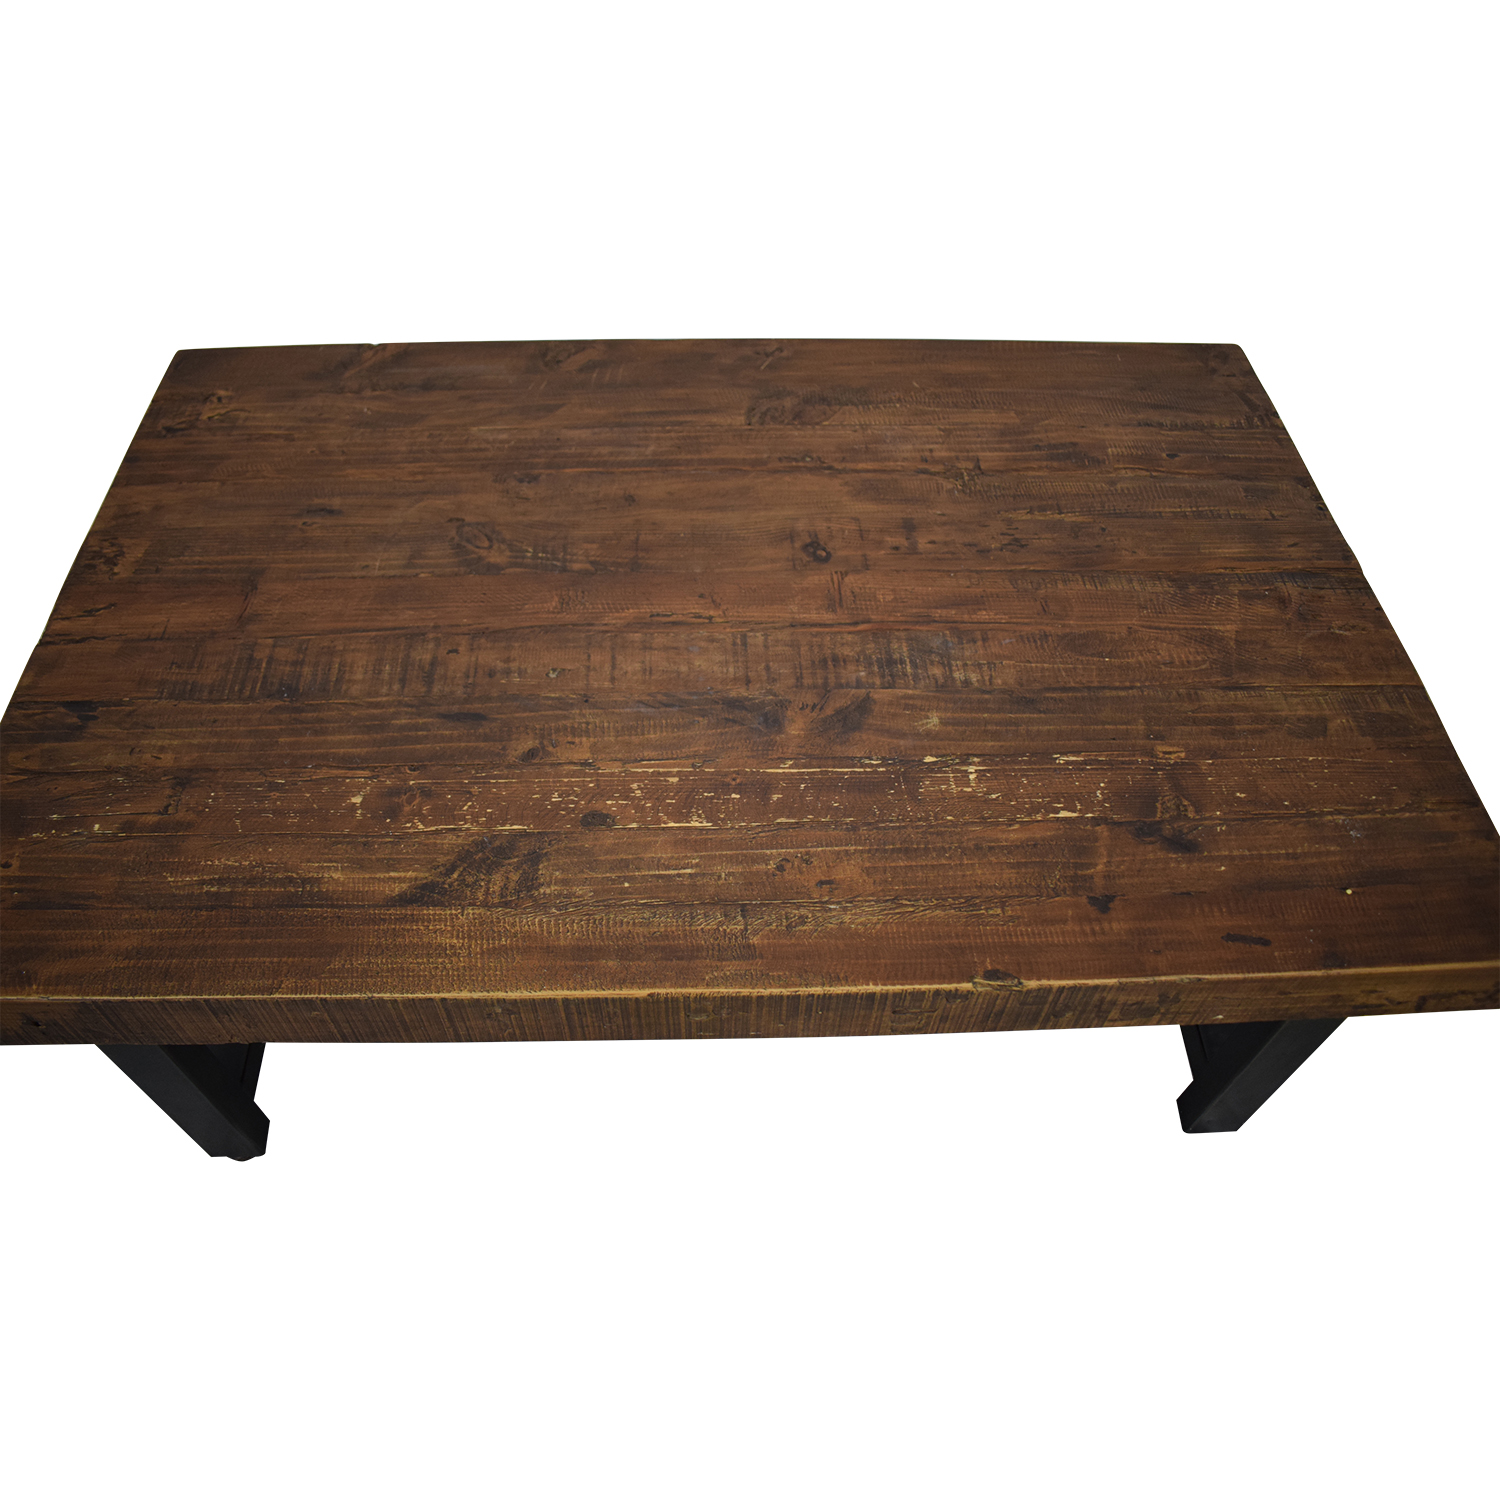 Pottery Barn Pottery Barn Griffin Reclaimed Wood Coffee Table dimensions